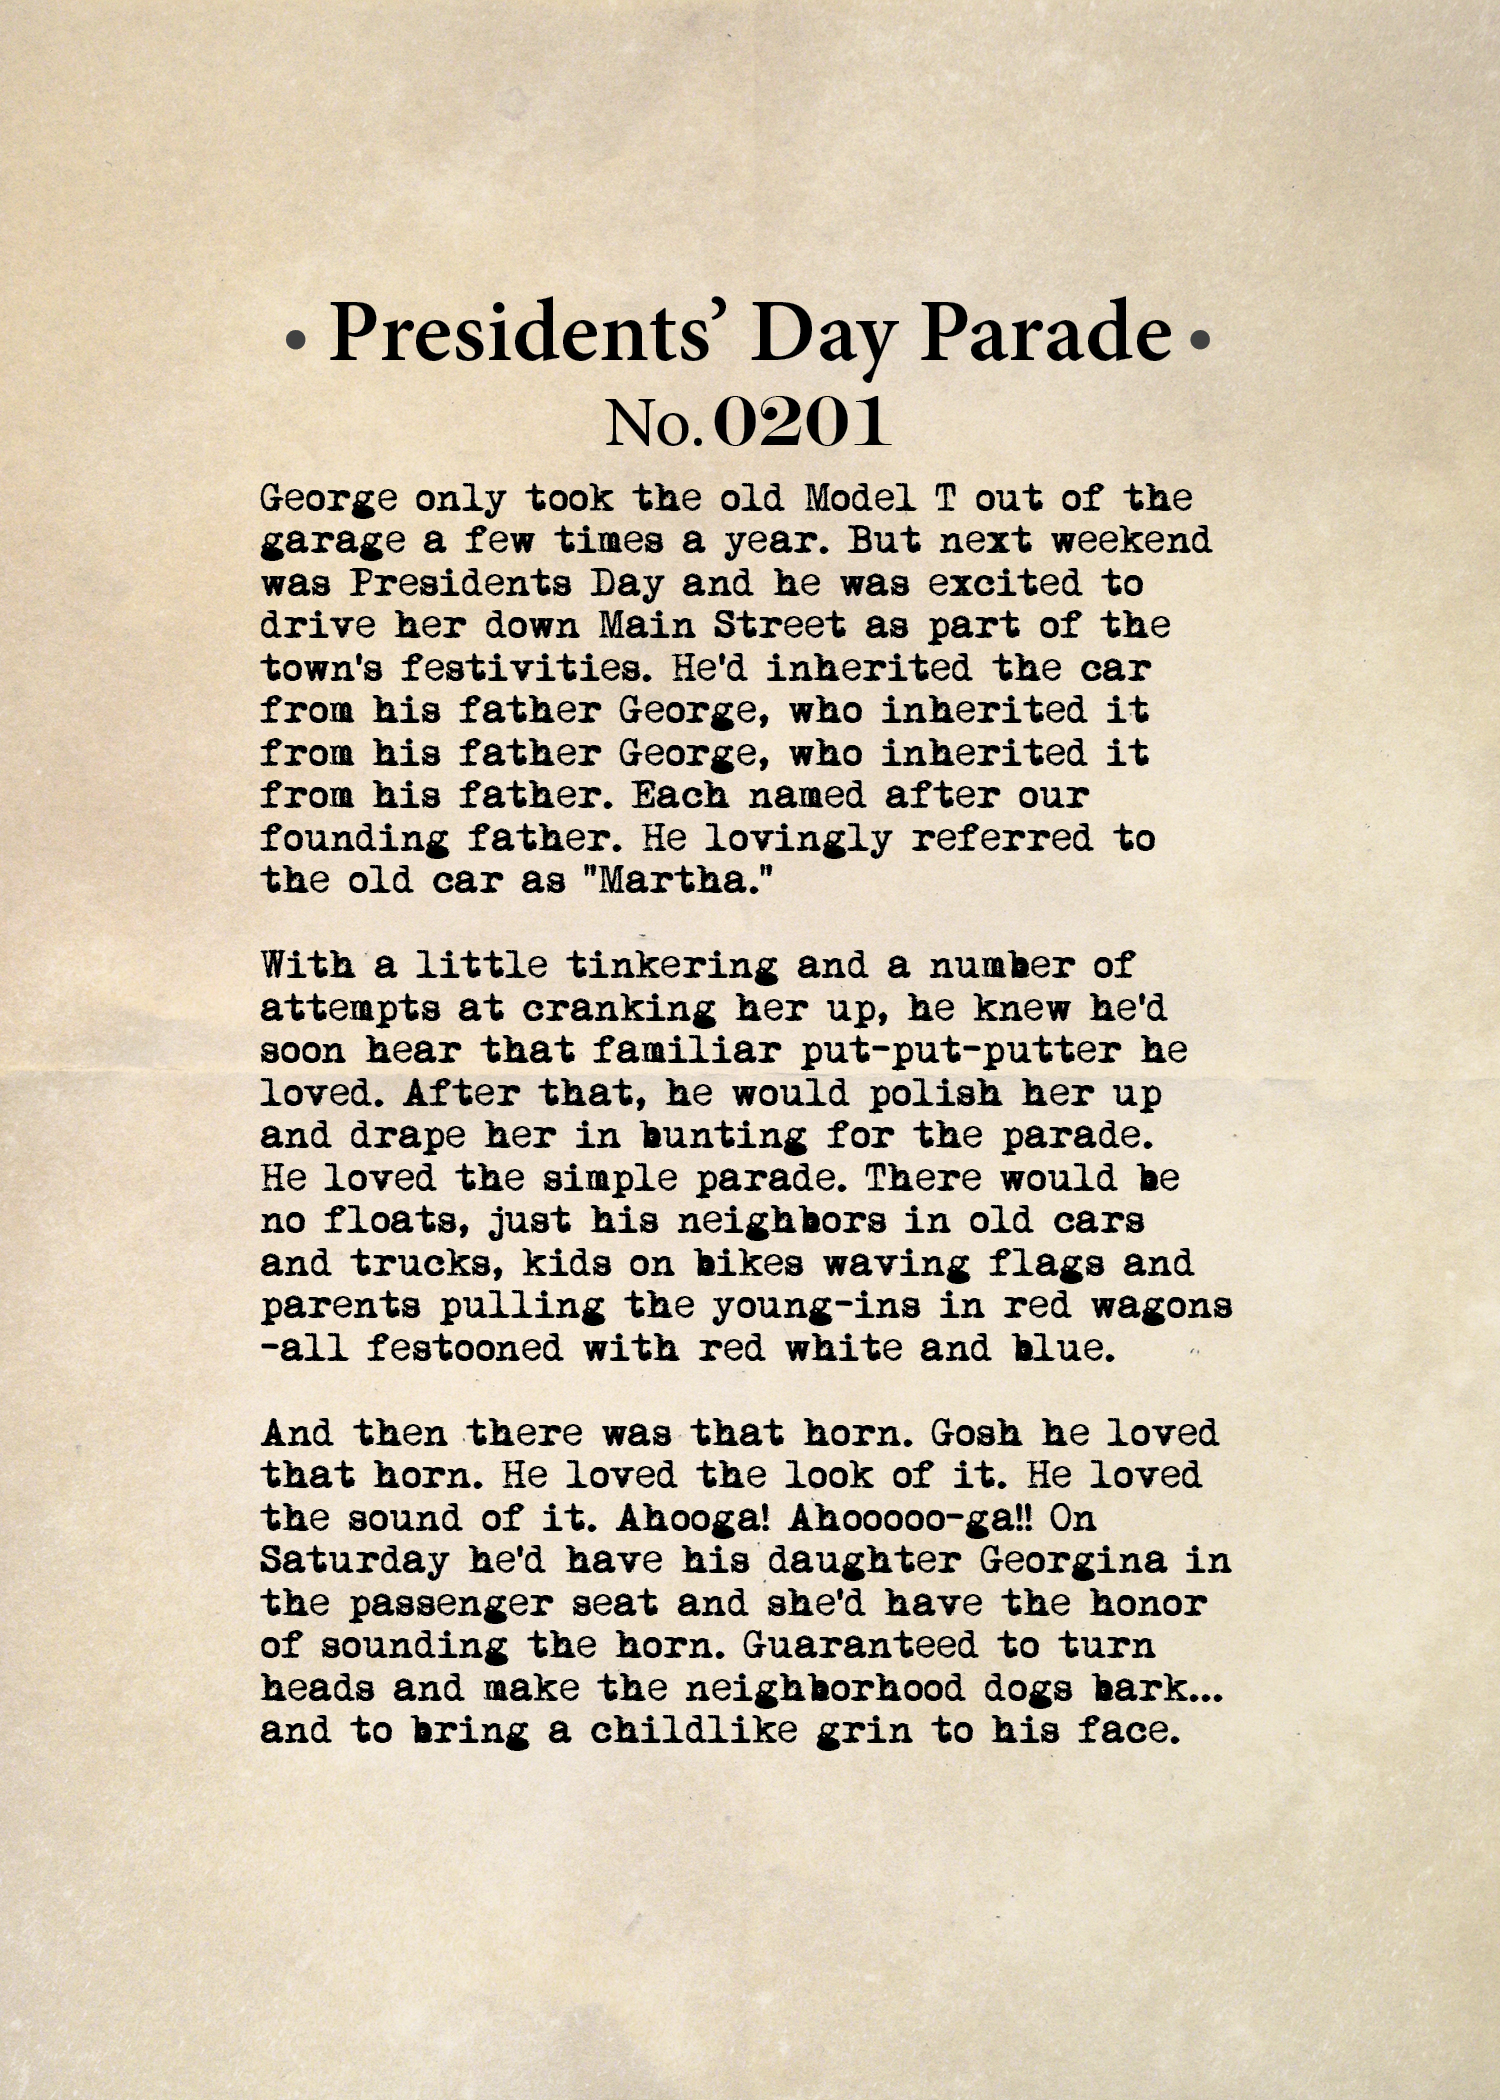 Presidents' Day Parade No. 0201